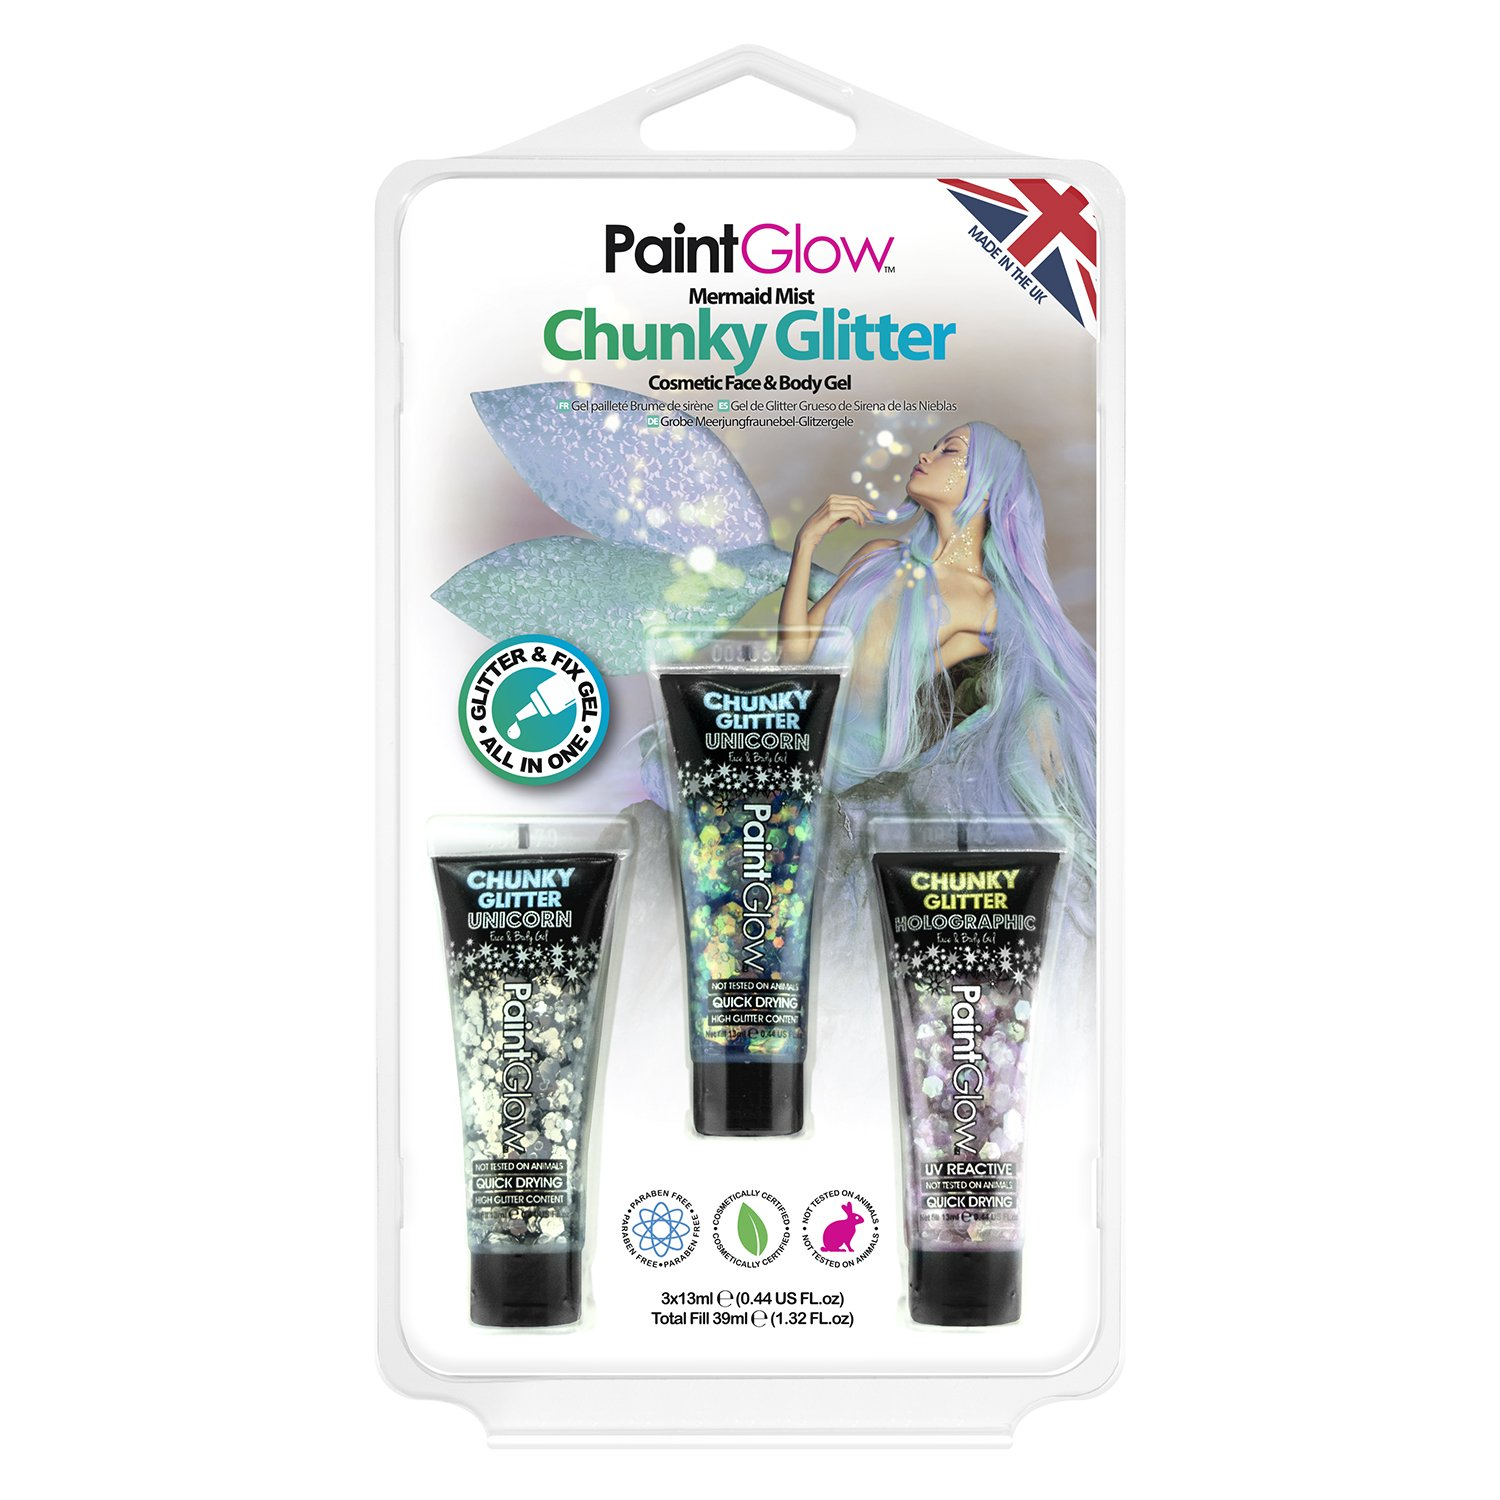 PaintGlow Mermaid Chunky Glitter Bodygel Kit